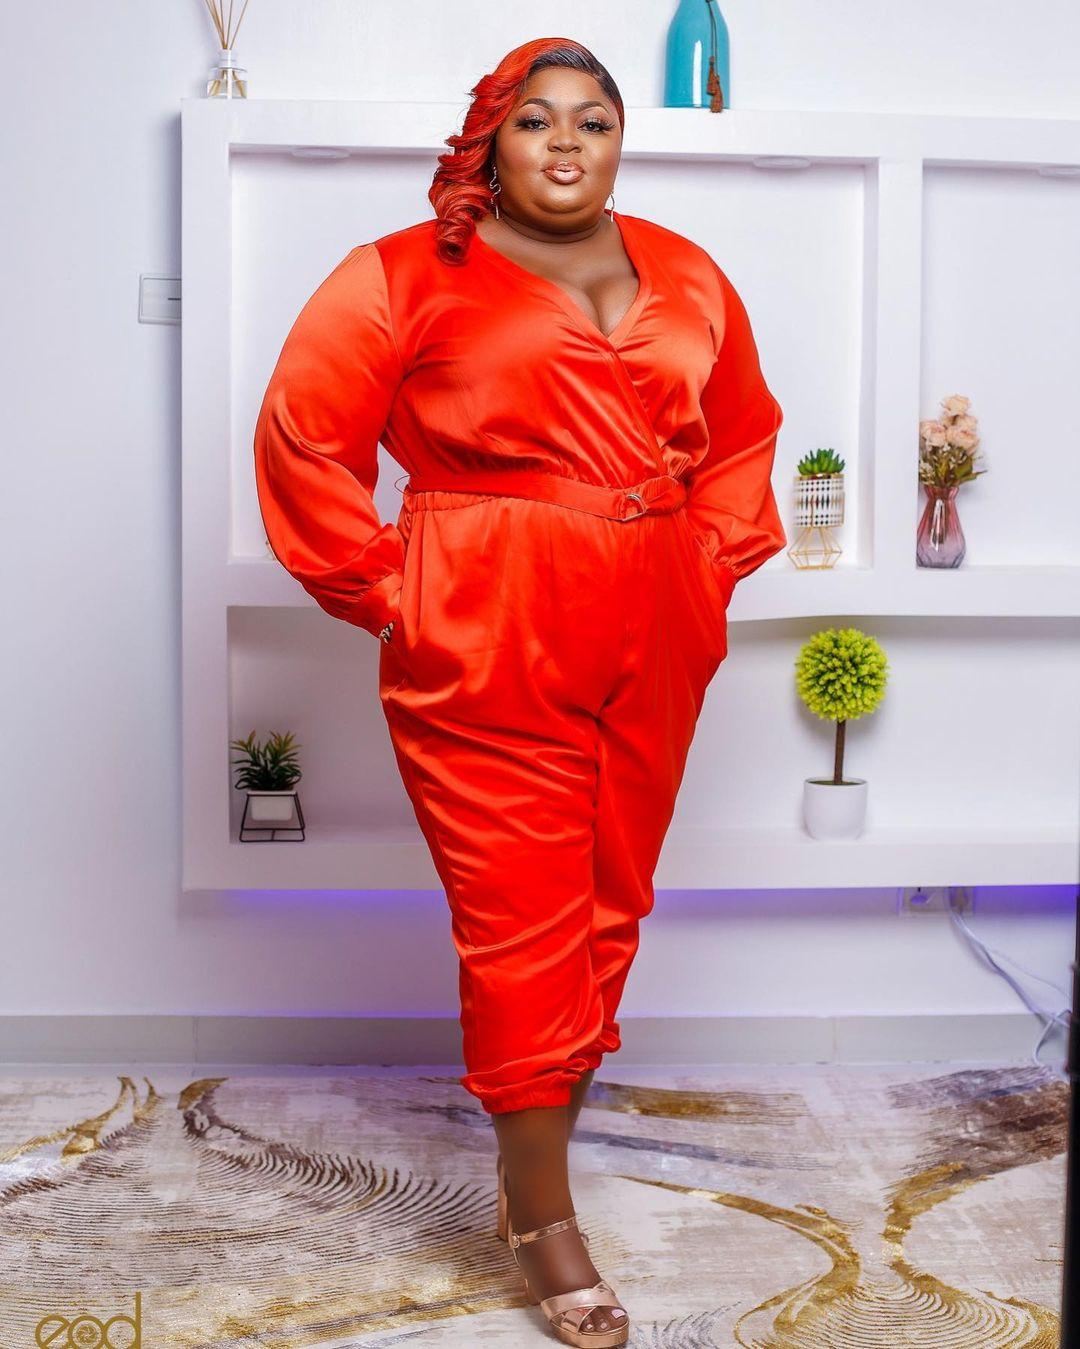 """""""Looking like LAWMA staff"""" - Eniola Badmus dragged over outfit to Headies"""